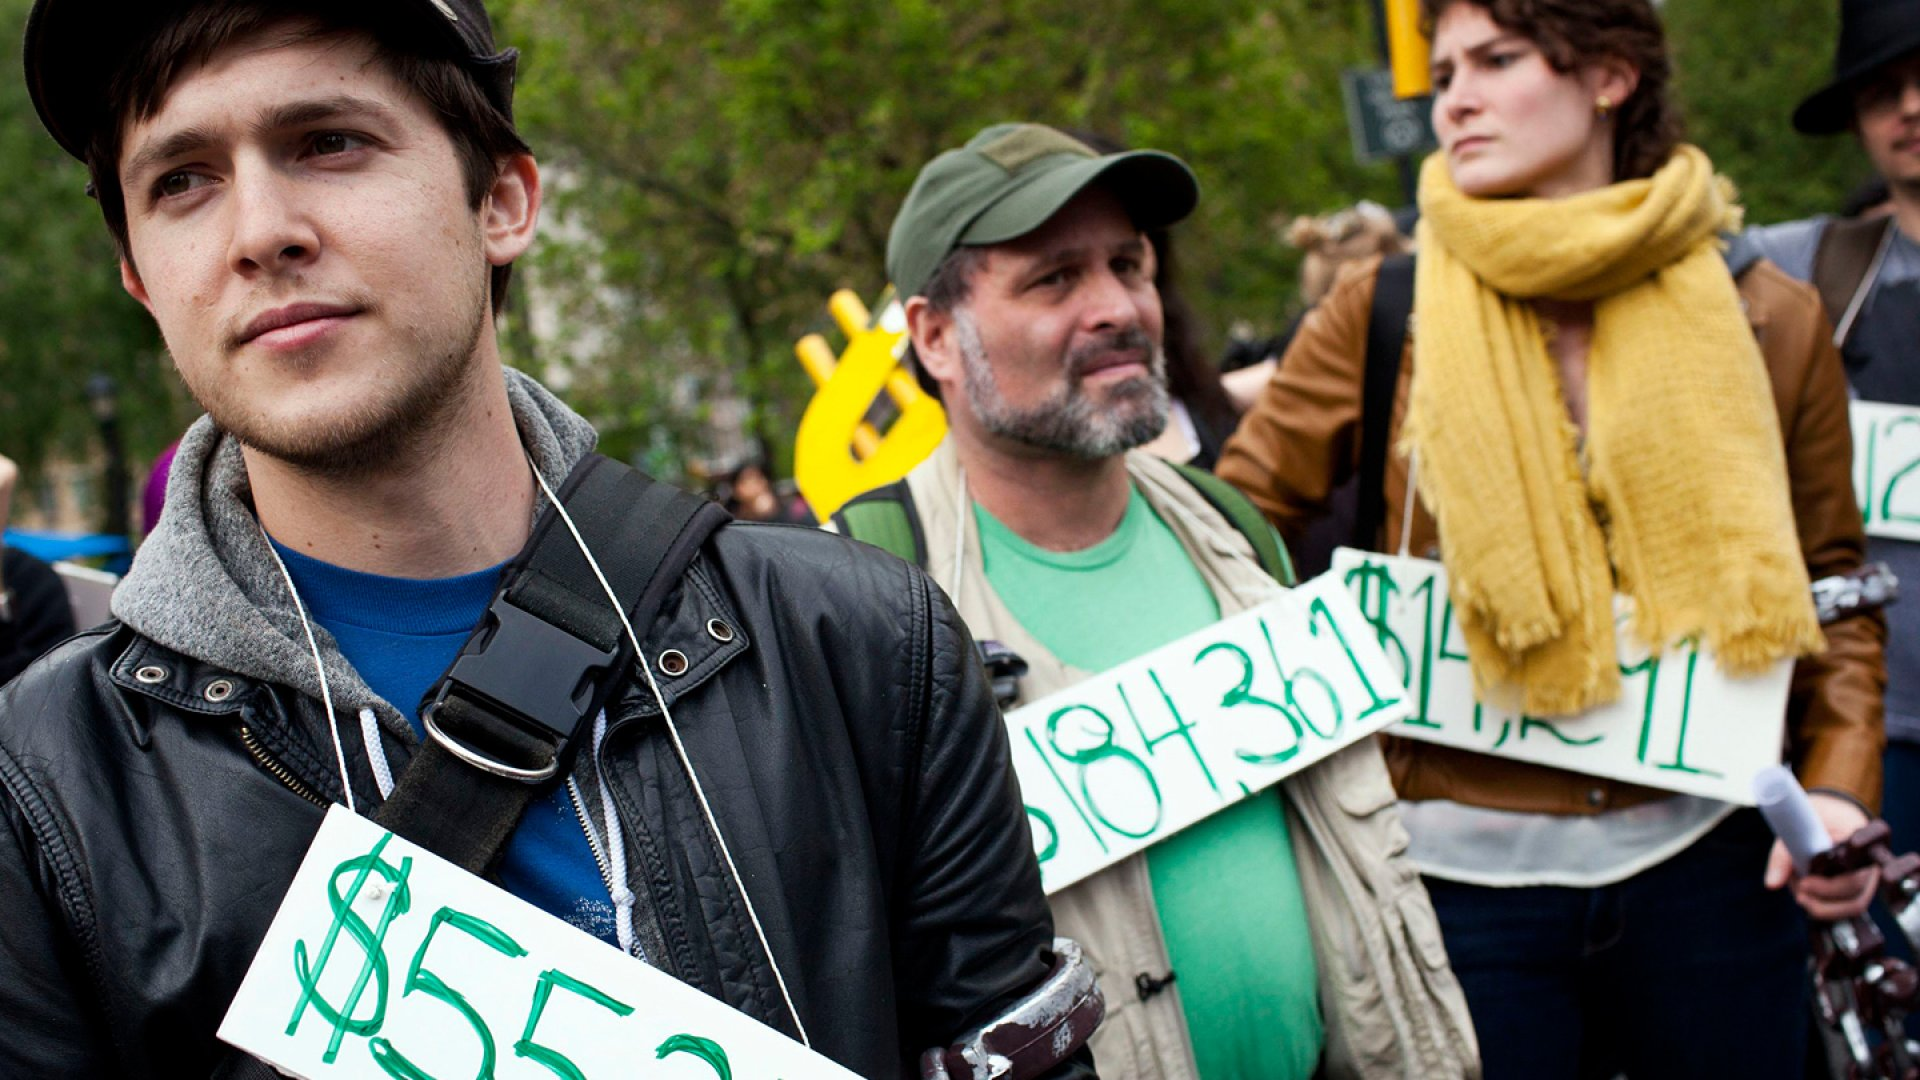 Occupy Wall Street demonstrators participating in a street-theater production wear signs around their necks representing their student debt during a protest in Union Square, in New York City.